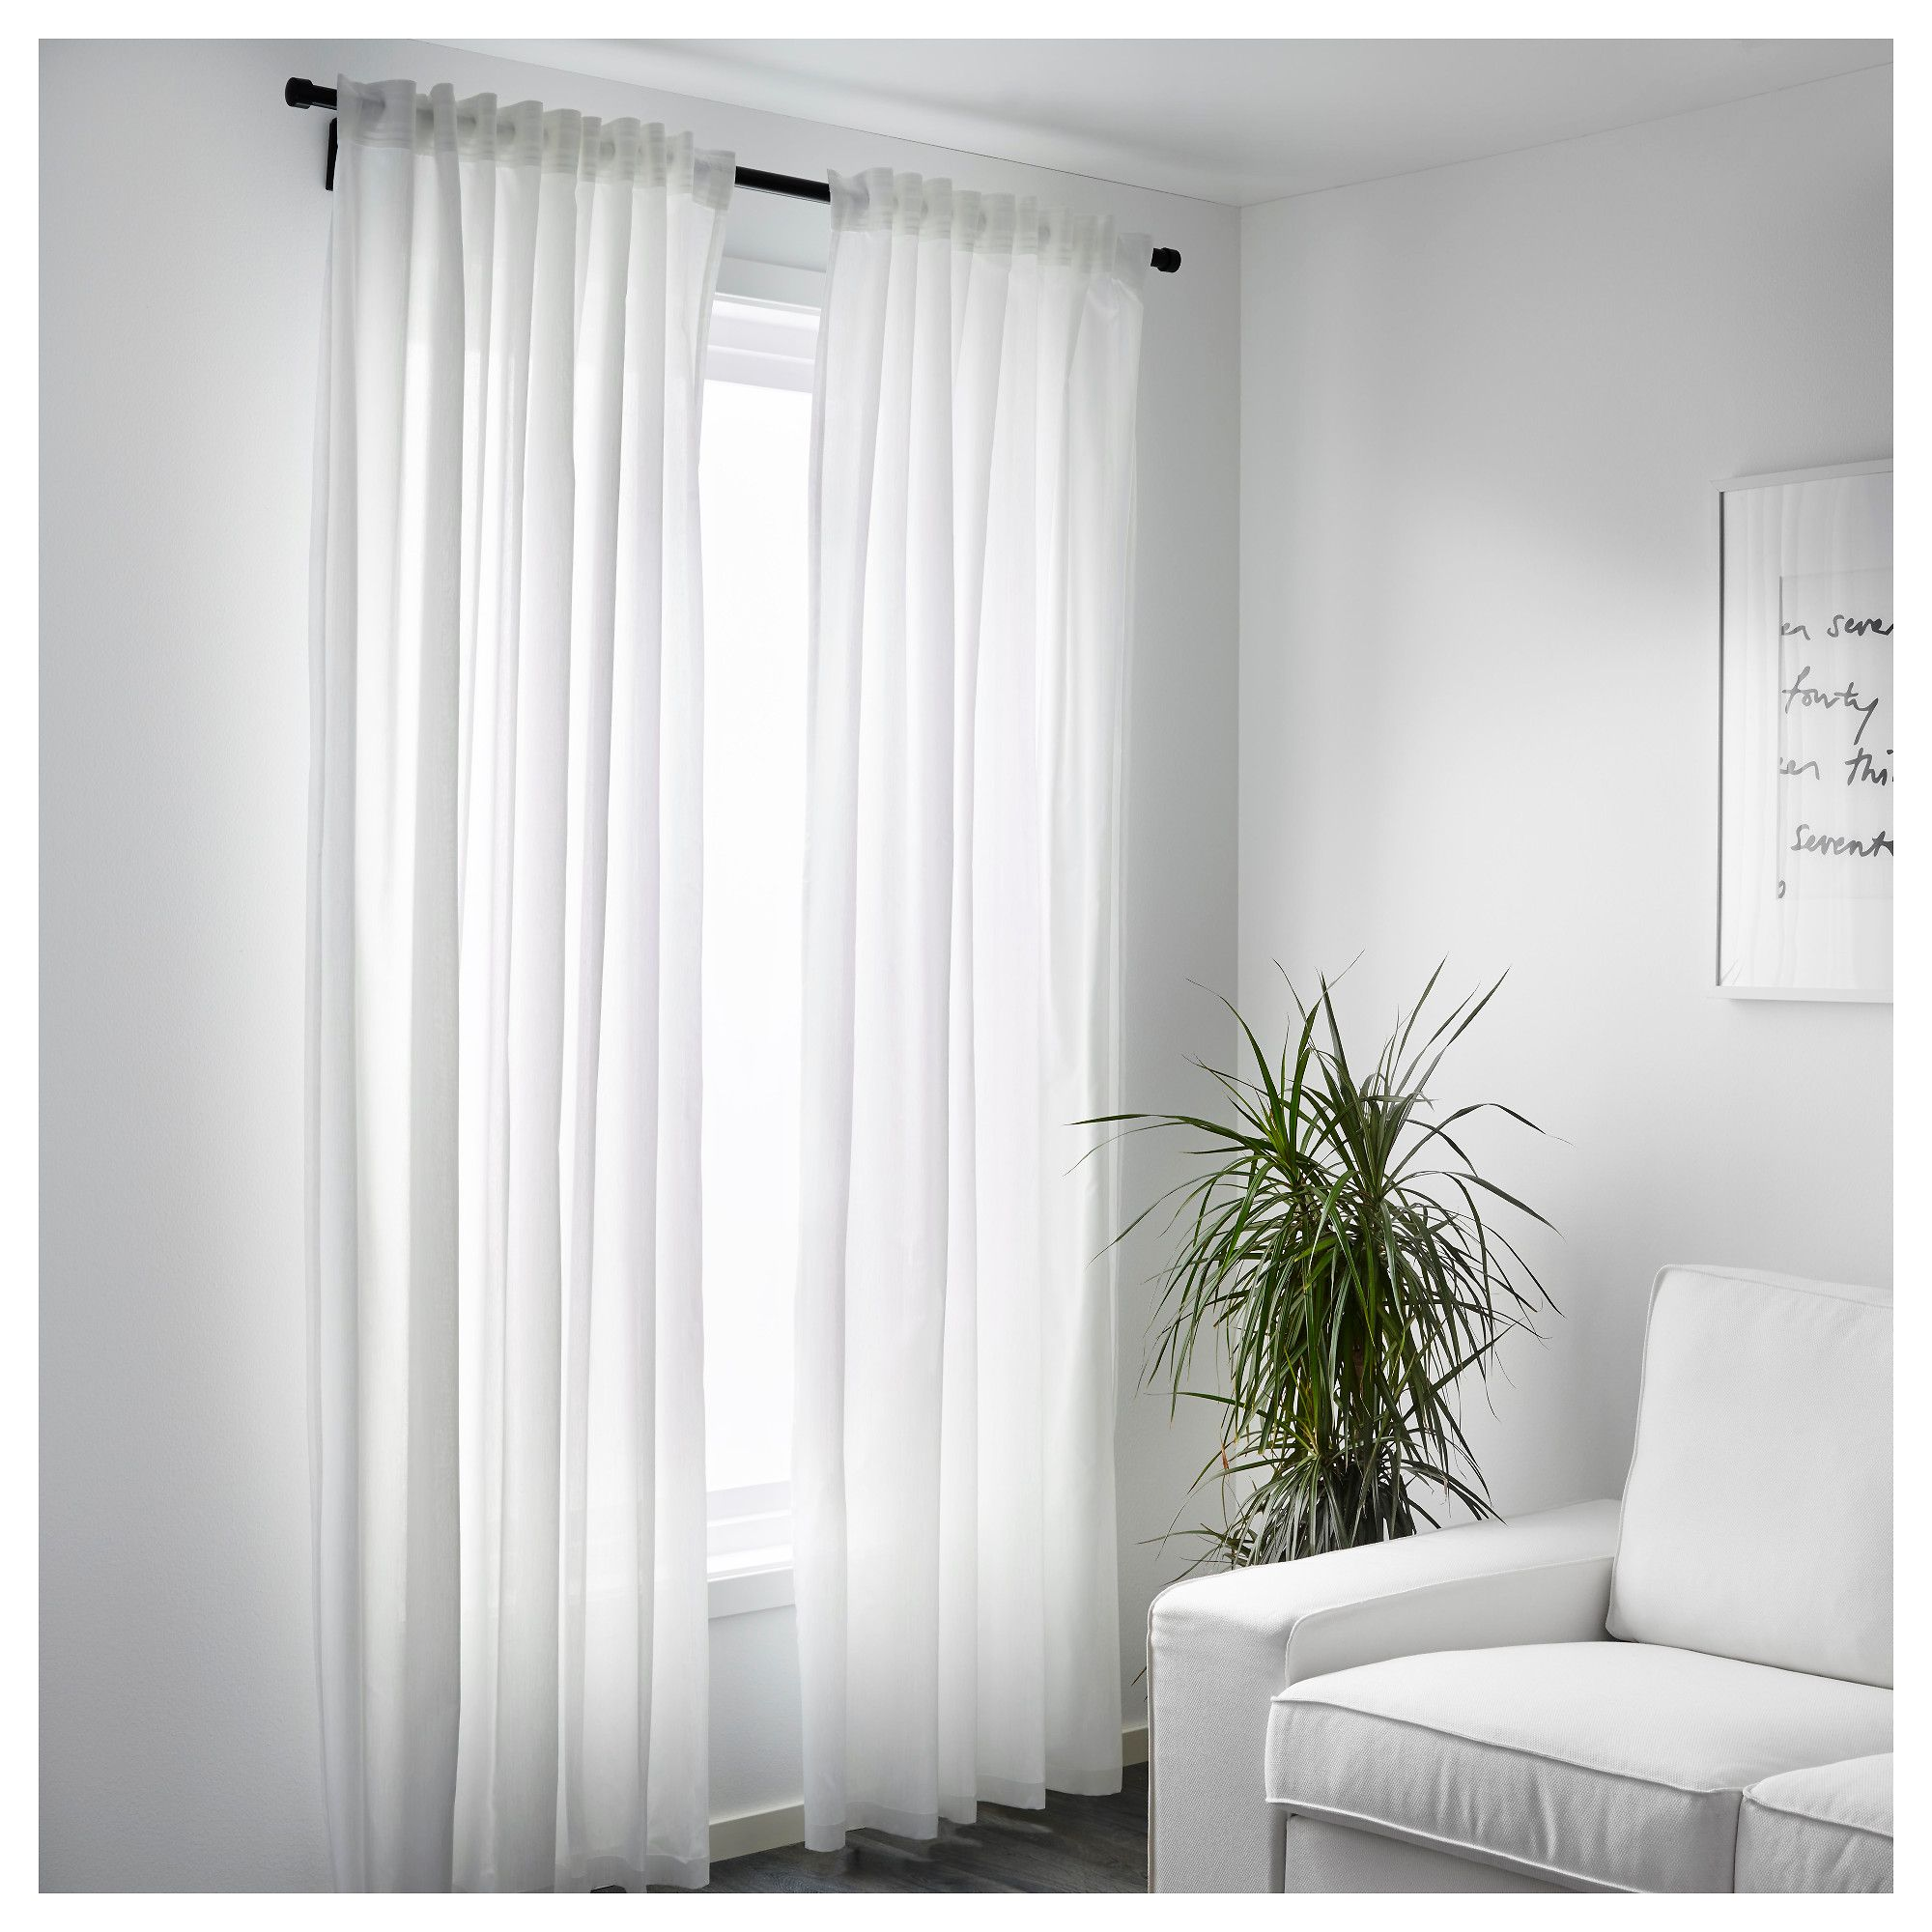 IKEA VIVAN curtains 1 pair The curtains can be used on a curtain rod or